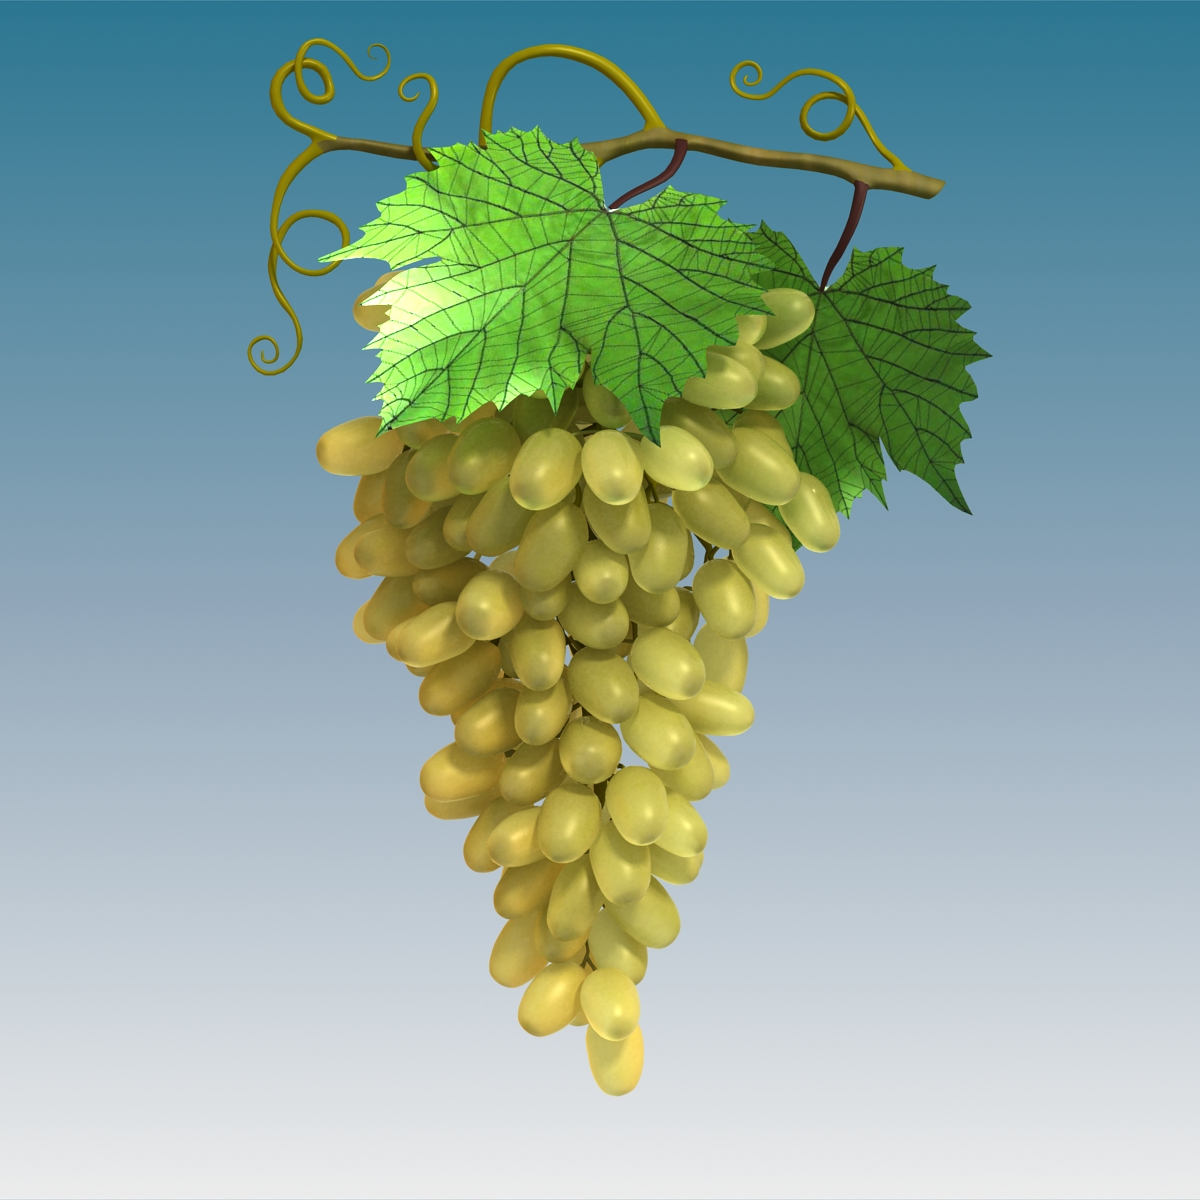 Grapes Cluster Green 3d model 3ds max fbx c4d lwo lws lw obj 204230